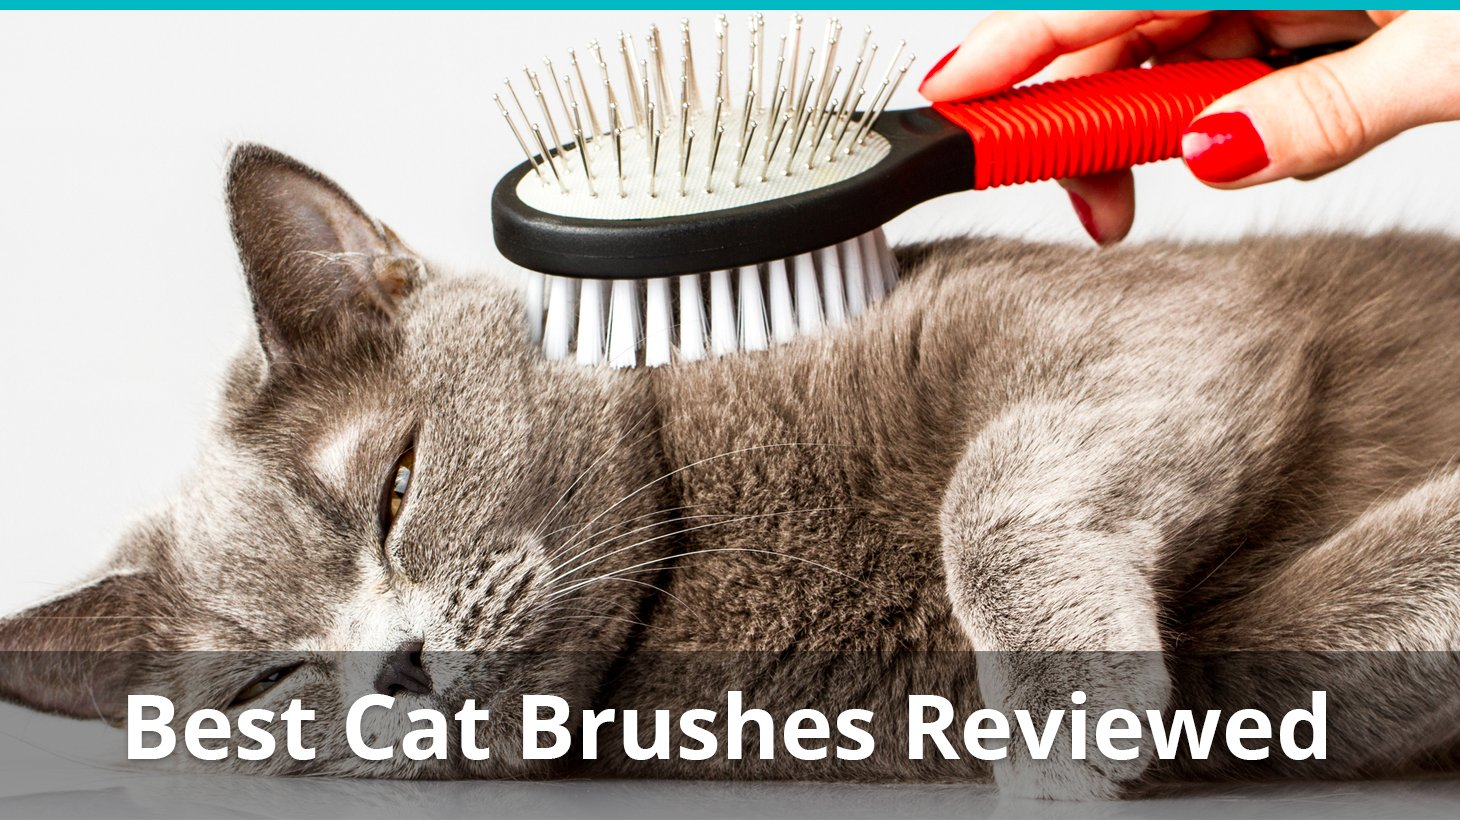 Effectively Remove 95/% Mats Tangles Fur /& Dirt MILDPETS Cat Brush for Shedding and Grooming for Short Long Haired Puppy /& Cats Deshedding Brush /& Massage Comb 2 in 1